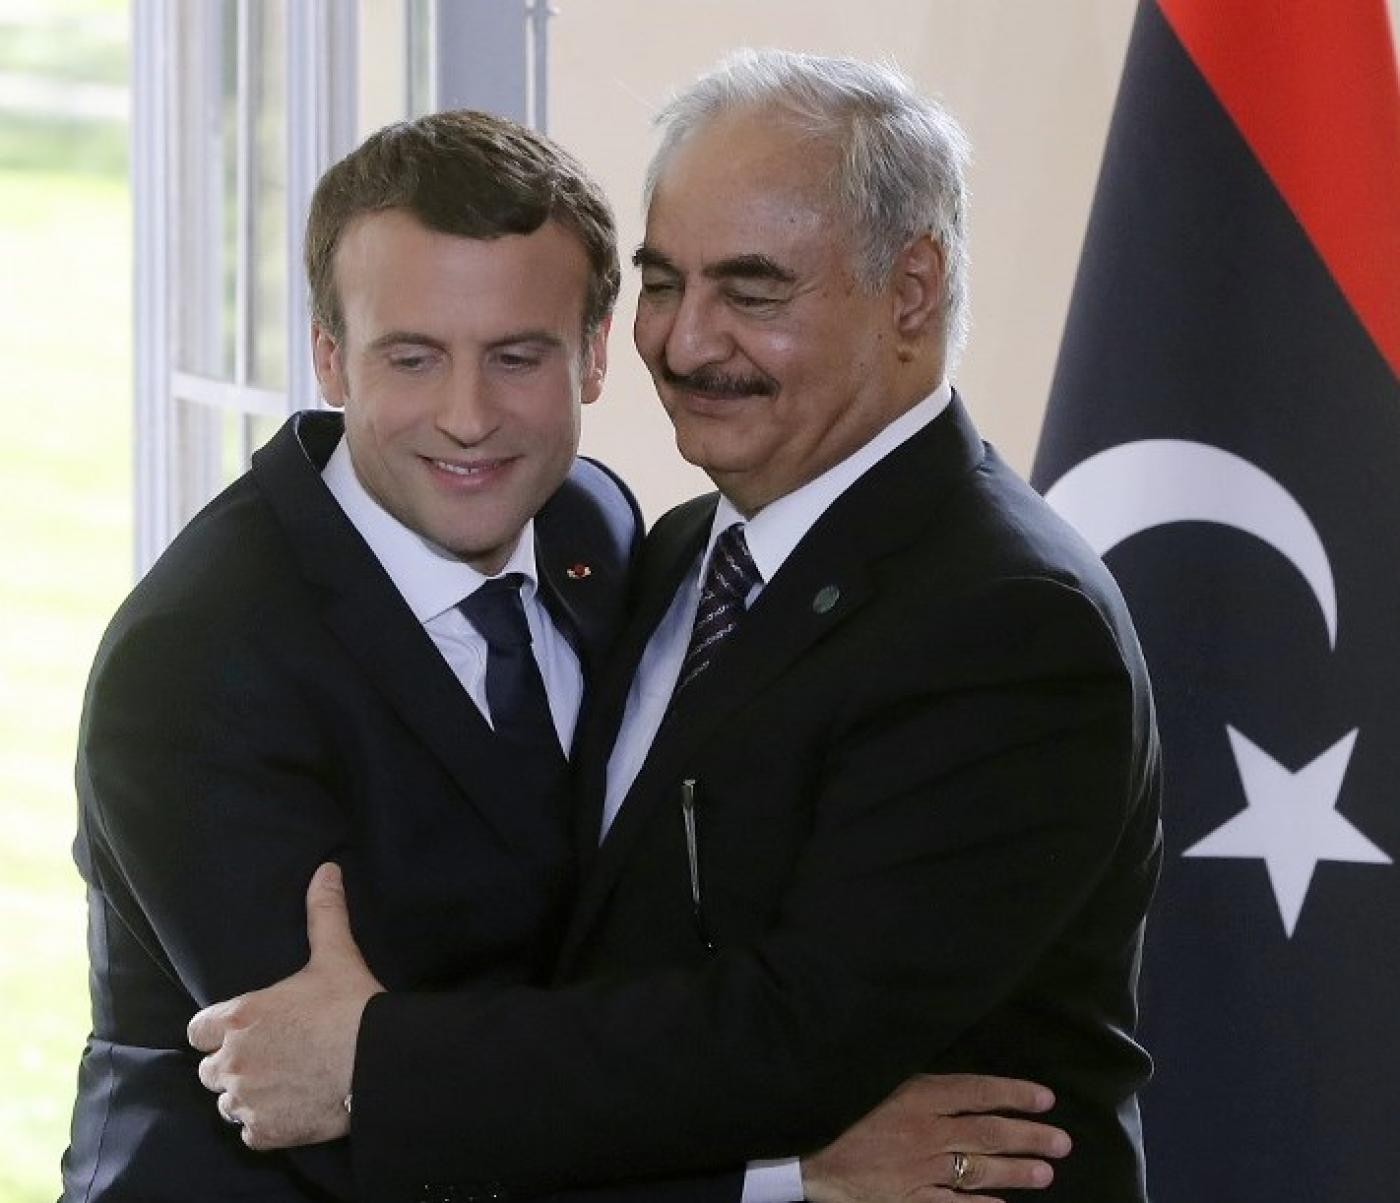 Libya conflict: Is France an honest broker? | Middle East Eye